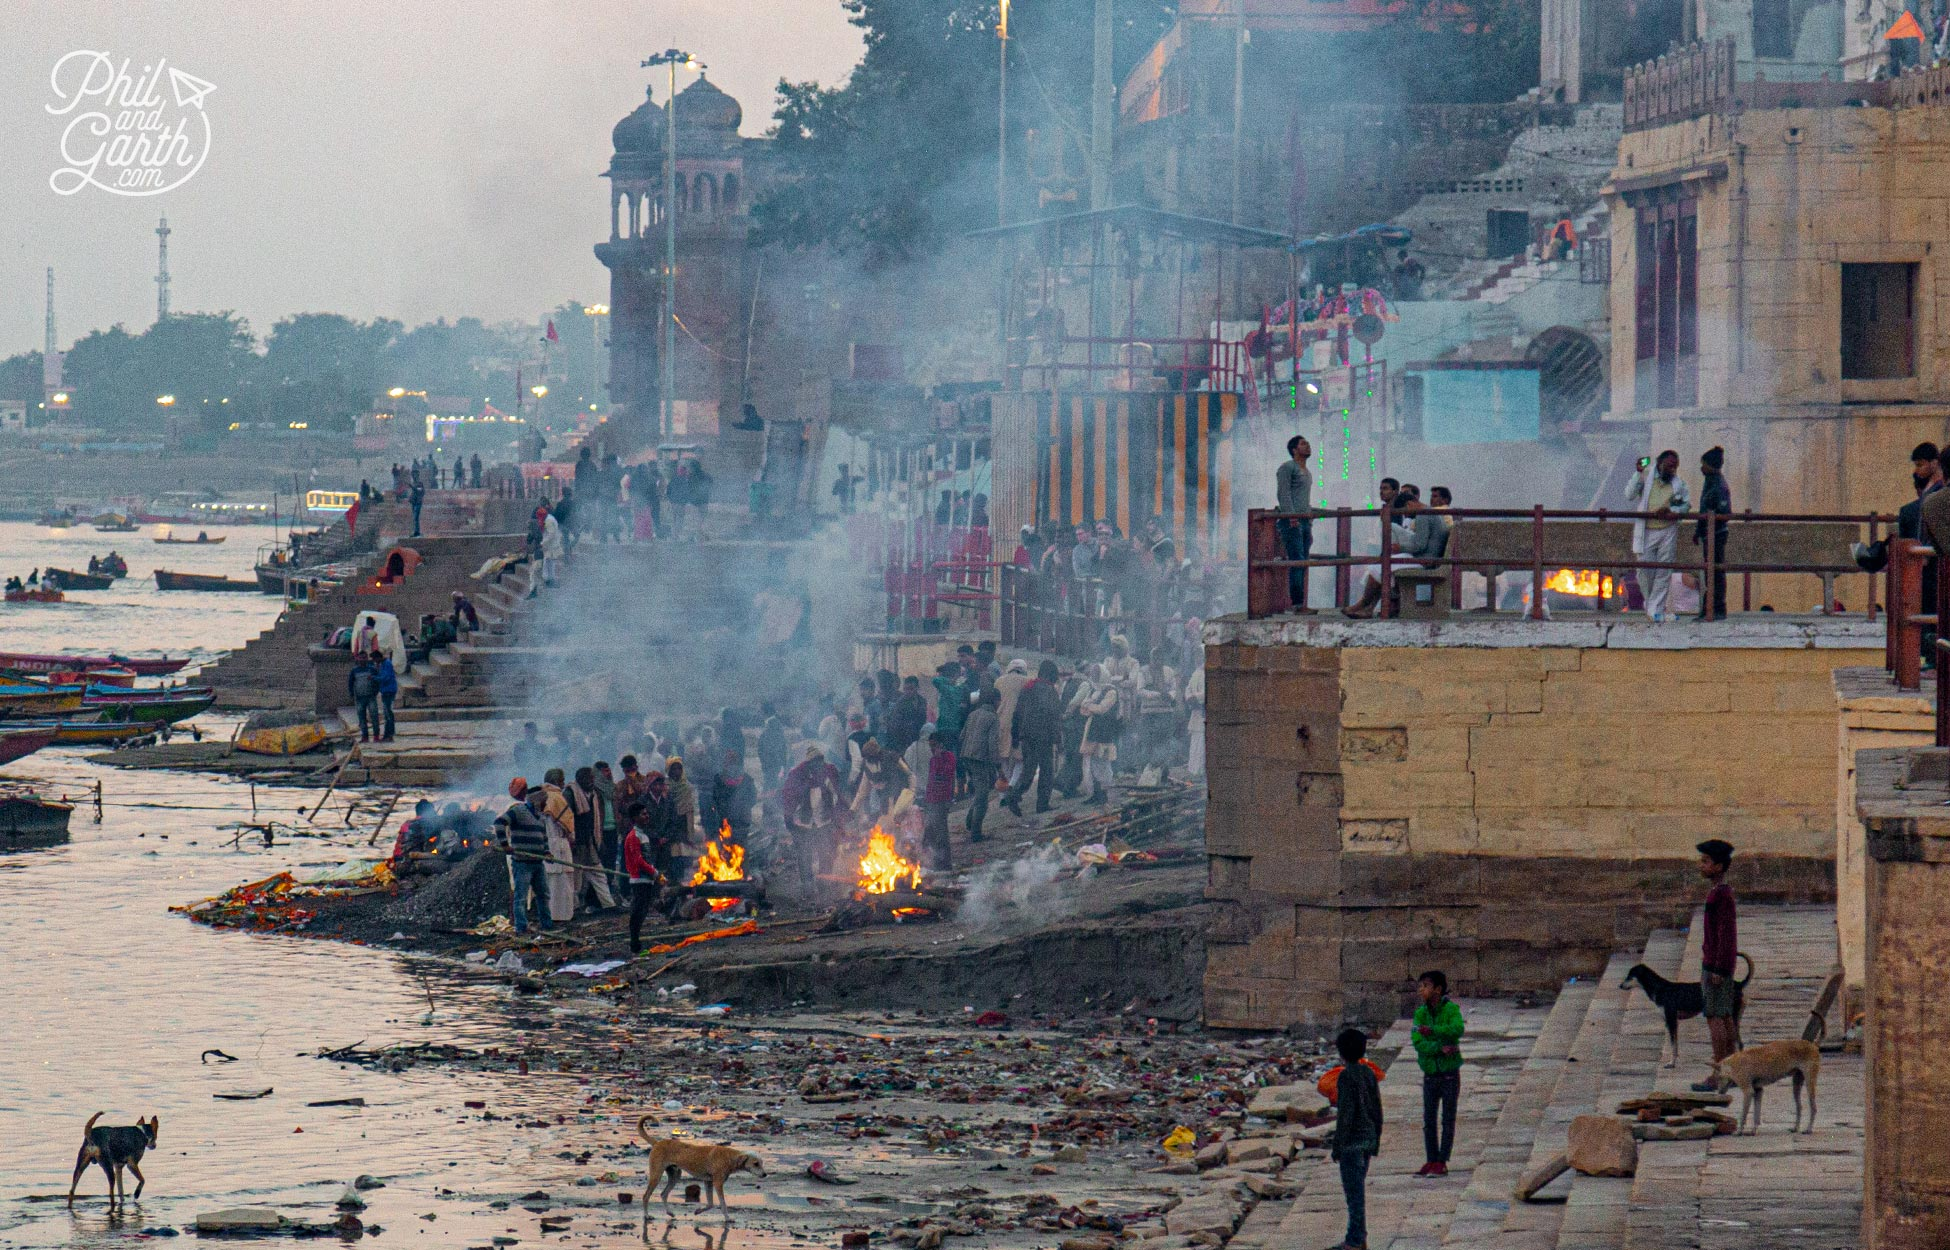 Harishchandra Ghat the second site for cremations by the River Ganges